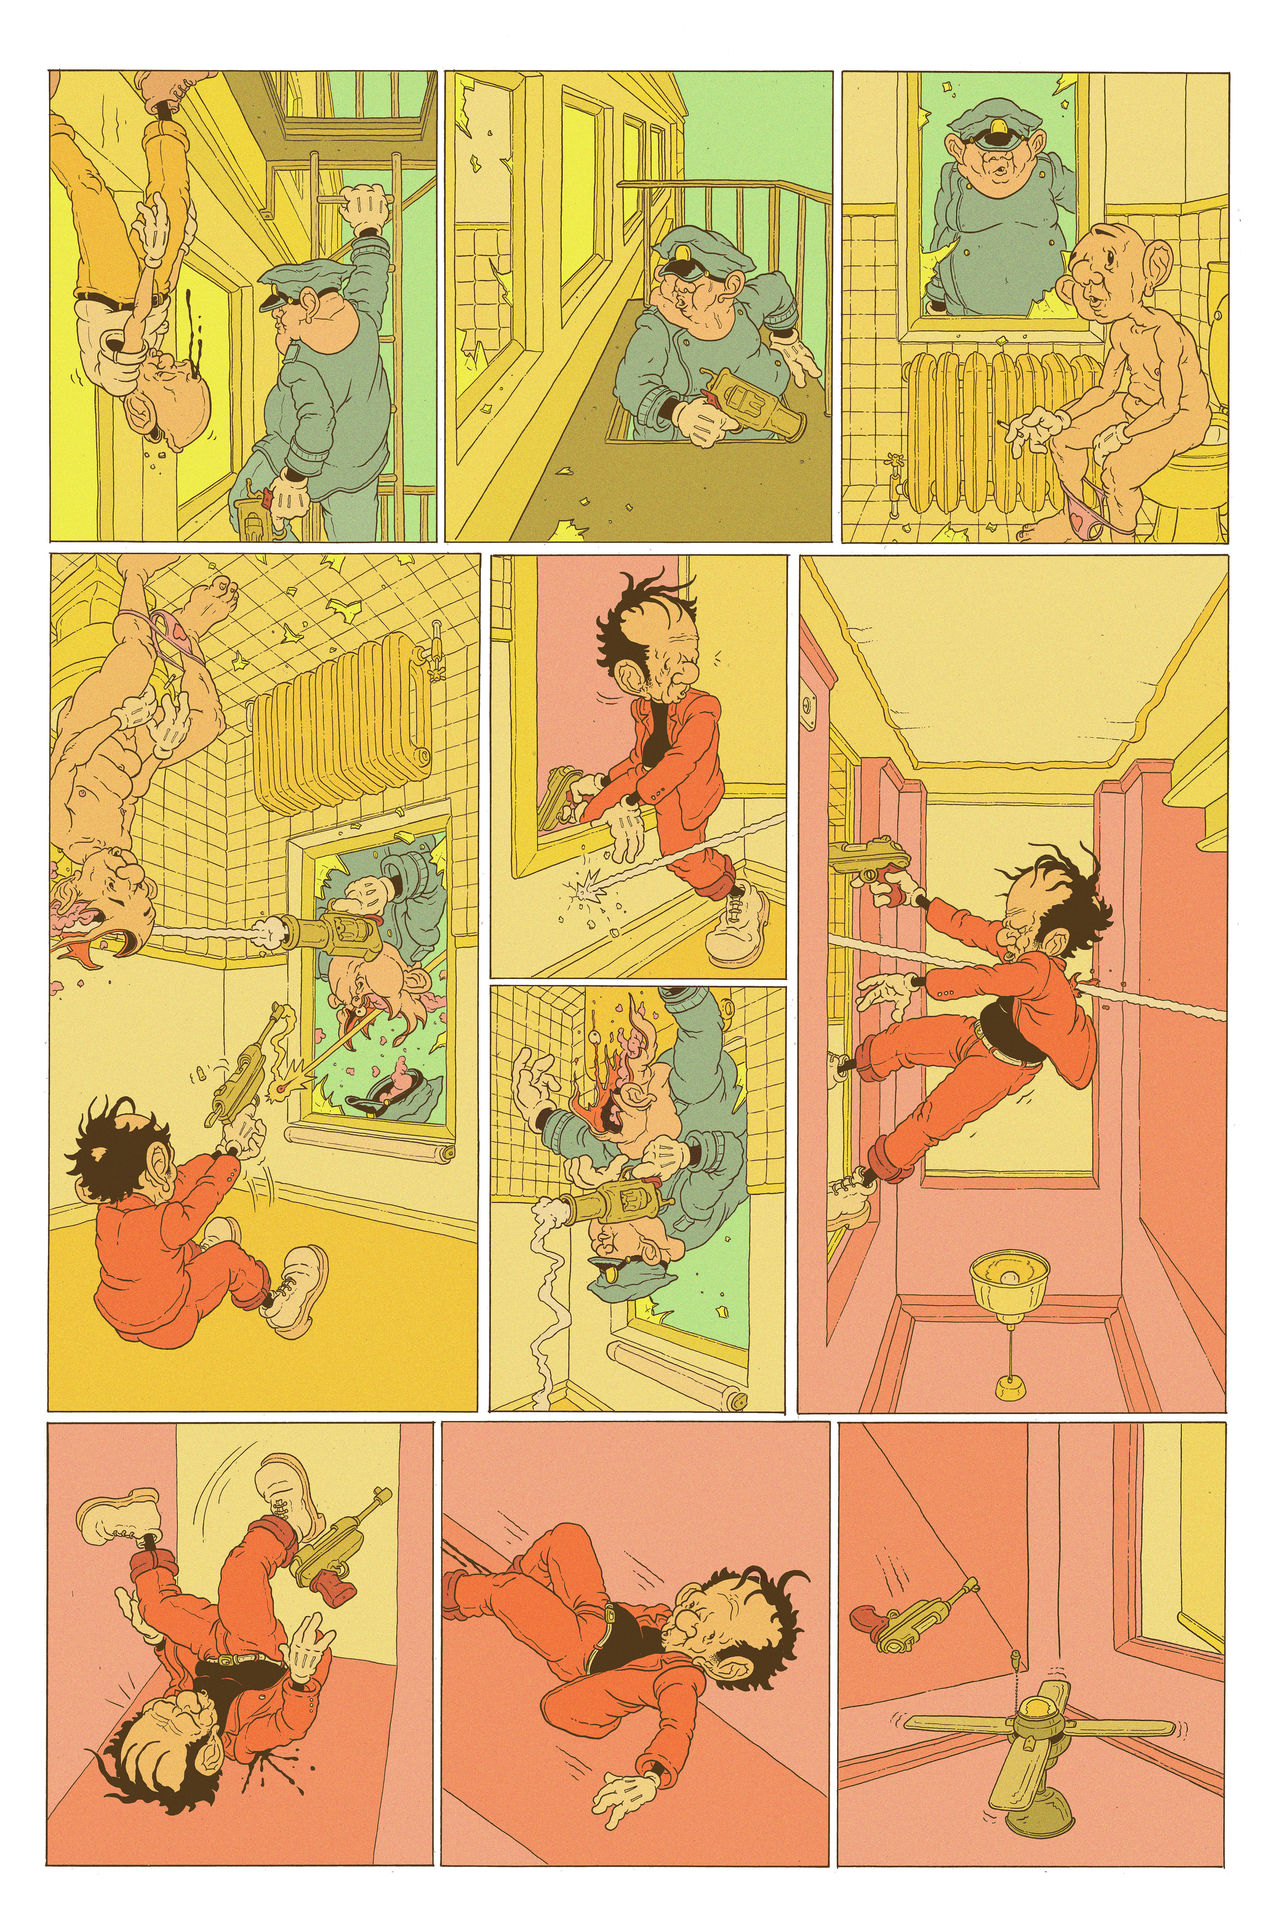 "A multi-panelled comic depicting a robber in a red suit and yellow beanie running away from police. He's just lost his centre of gravity and is floating up.  He managed to get into someone's apartment high up in a building and the police are in pursuit. They pop in to someone's bathroom and the robber is on the ceiling and they have a shoot out and the robber gets shots and falls ""up"" towards a ceiling fan."